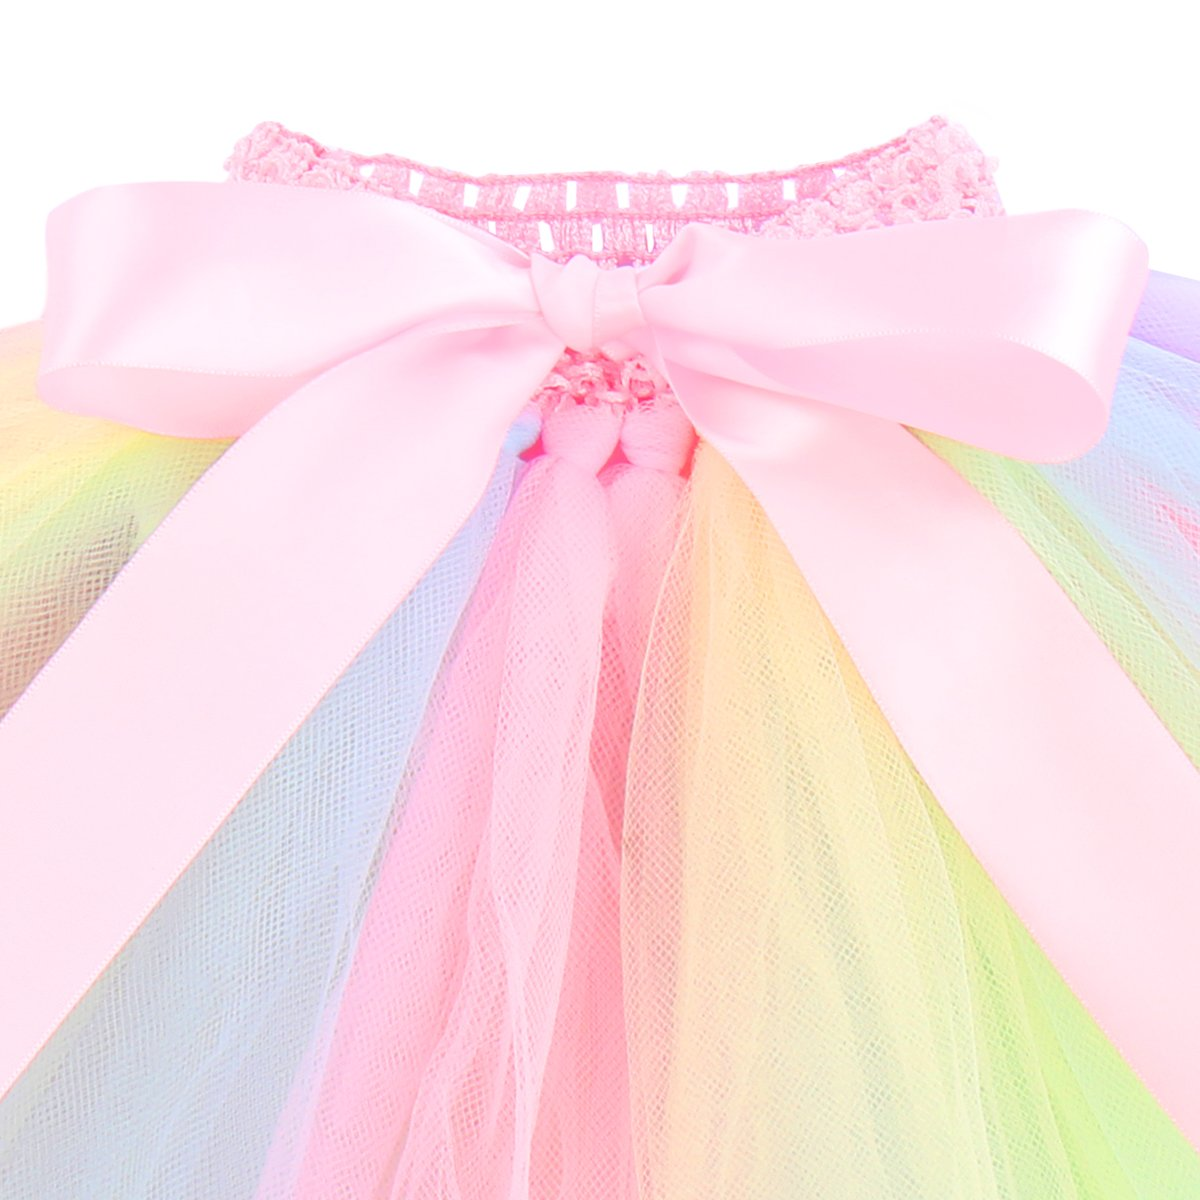 FYMNSI Baby Infant Girls Cake Smash Unicorn Outfit It/'s My First Birthday Shiny Print Golden Crown One Romper Rainbow Tutu Skirt with Headband 1st Birthday Party Dress Costume Photo Shoot Set 3pcs